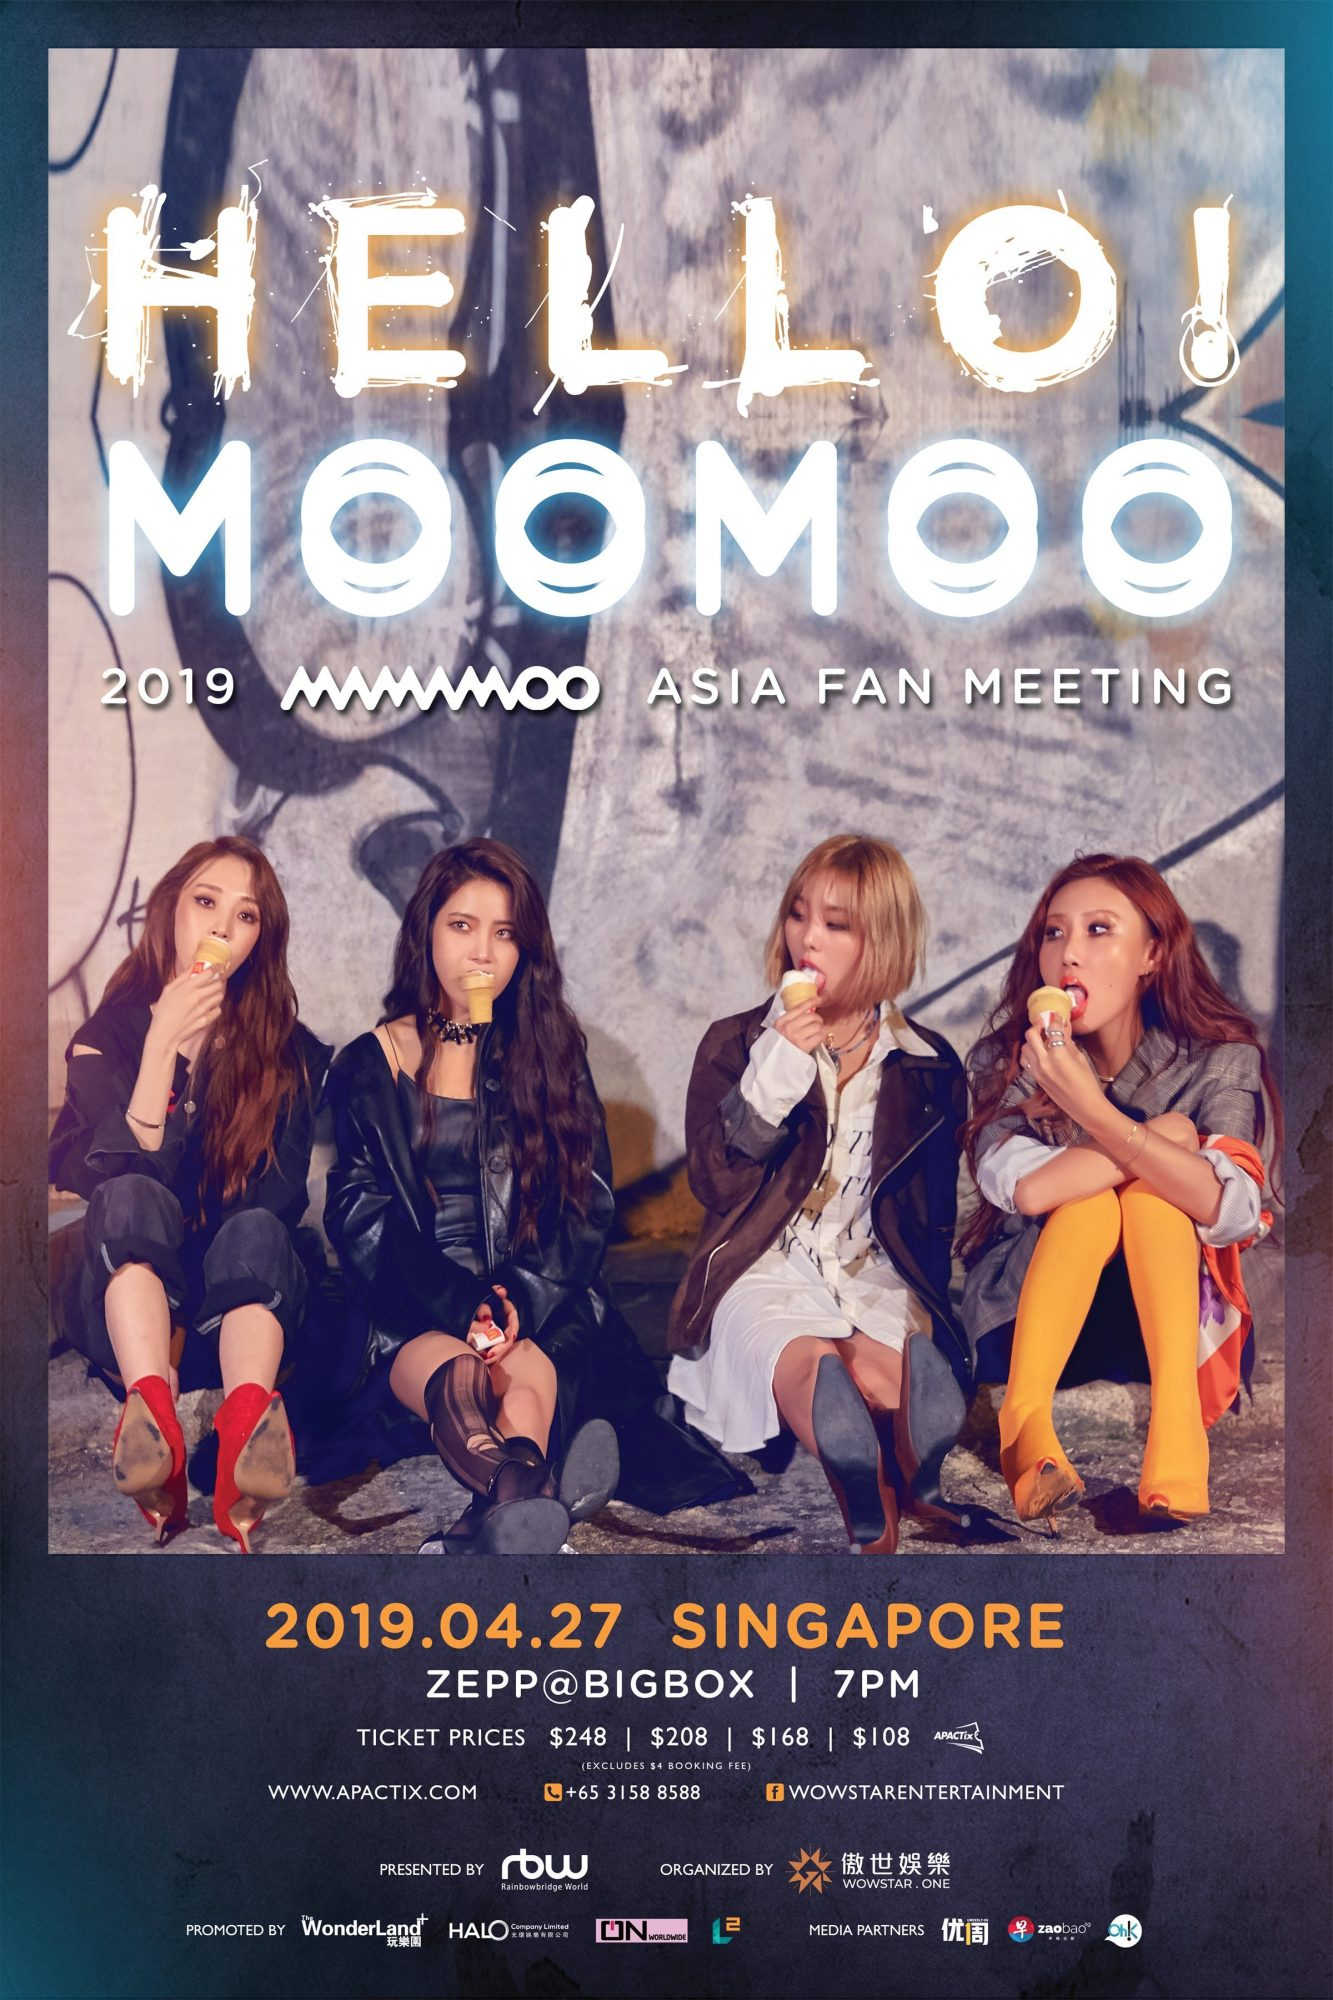 MAMAMOO Confirms Fanmeeting Details in Singapore, Tickets